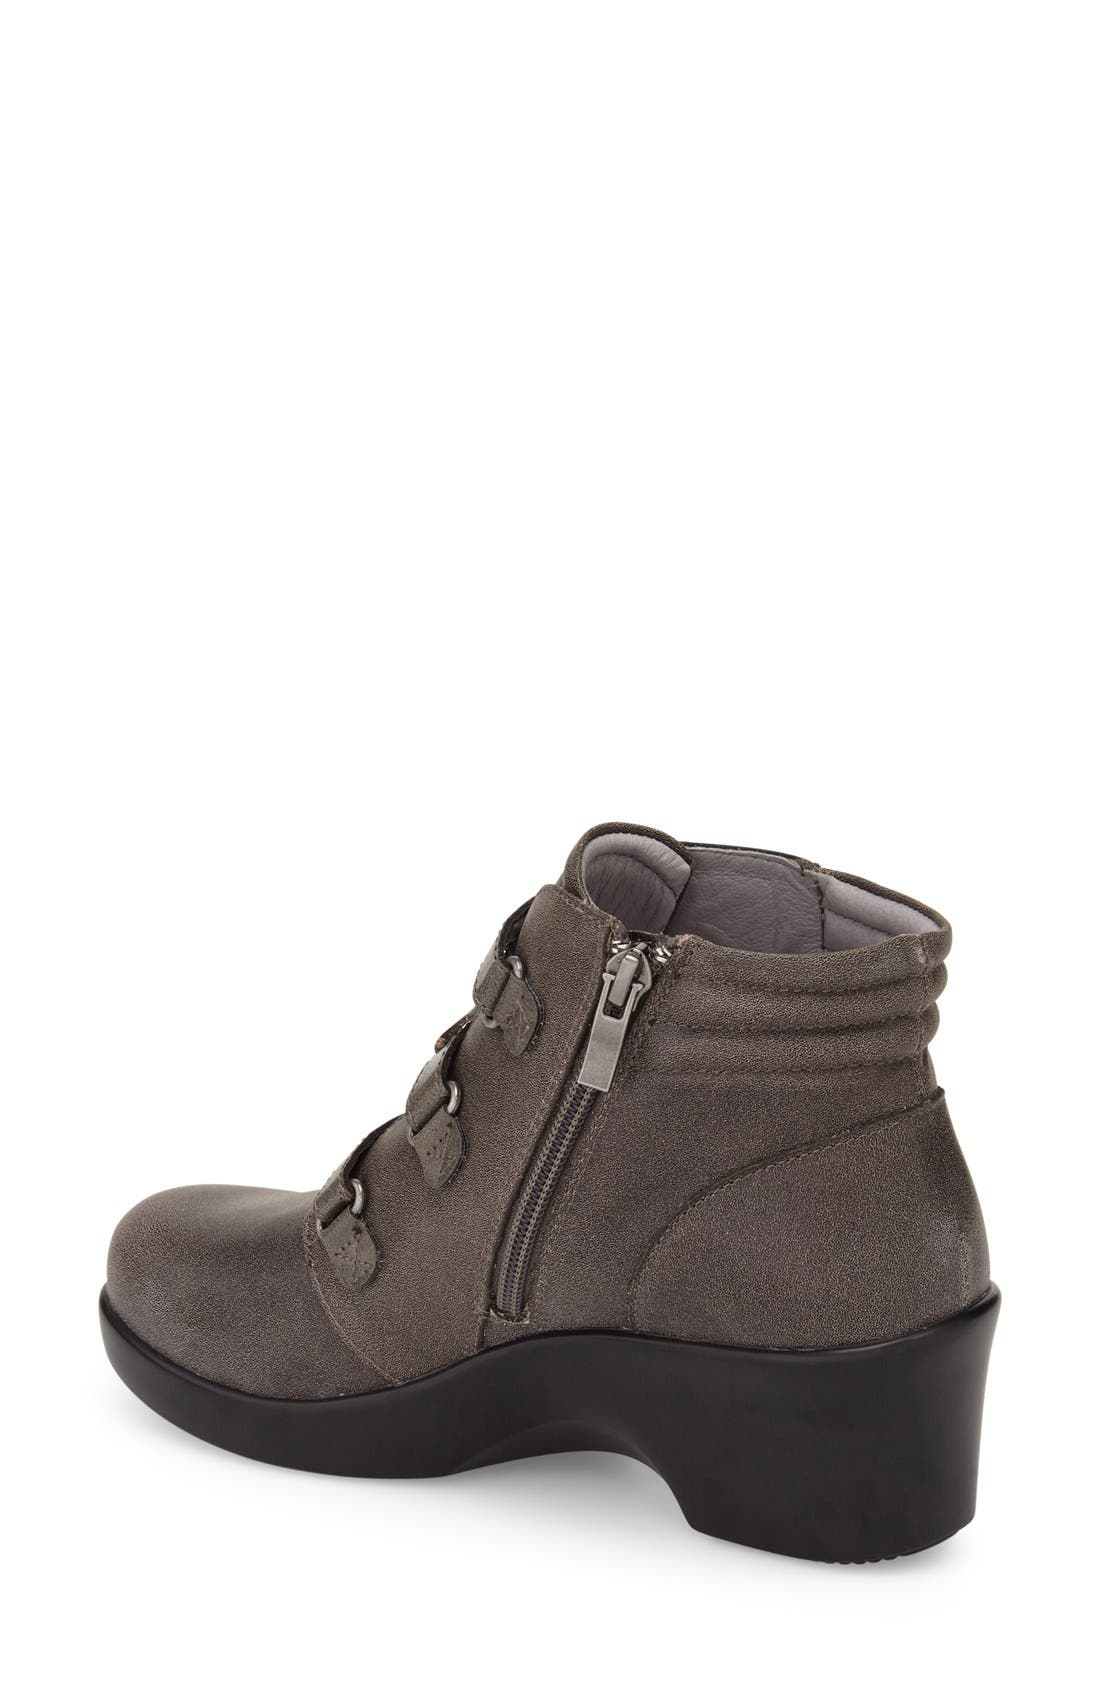 Indi Demi Wedge Bootie,                             Alternate thumbnail 12, color,